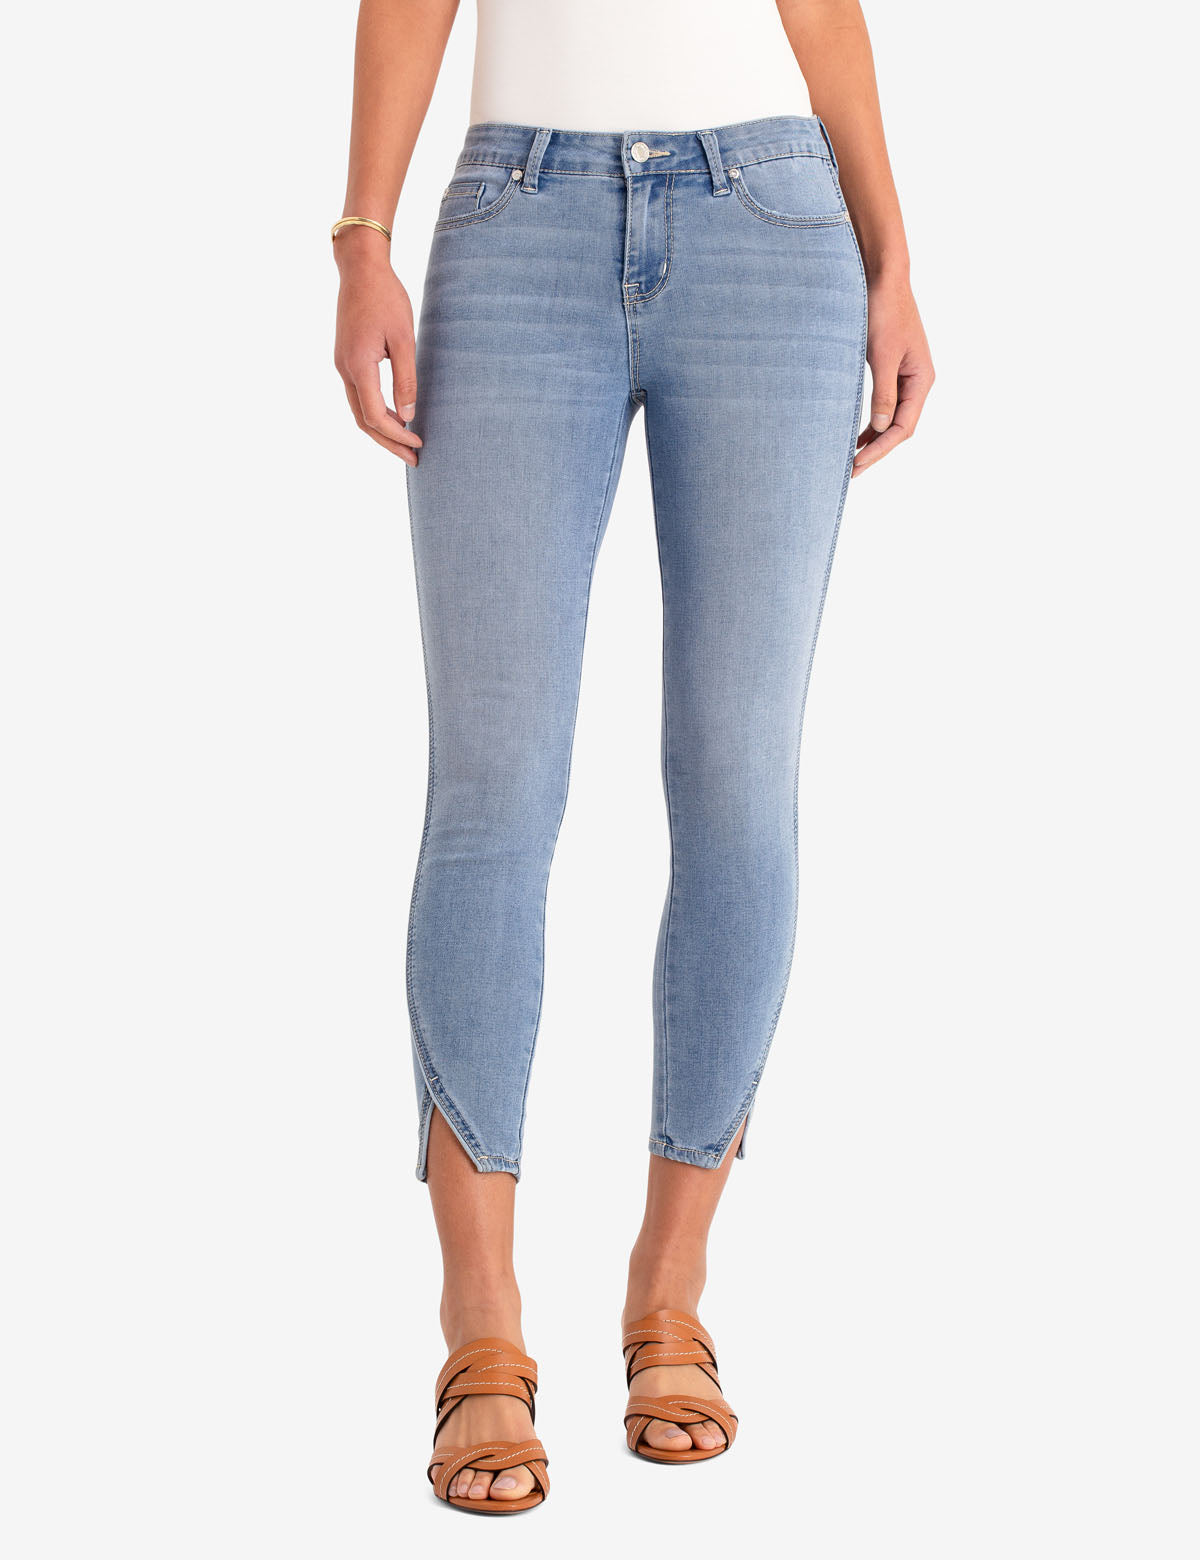 CROP JEGGING WITH PIPING - U.S. Polo Assn.